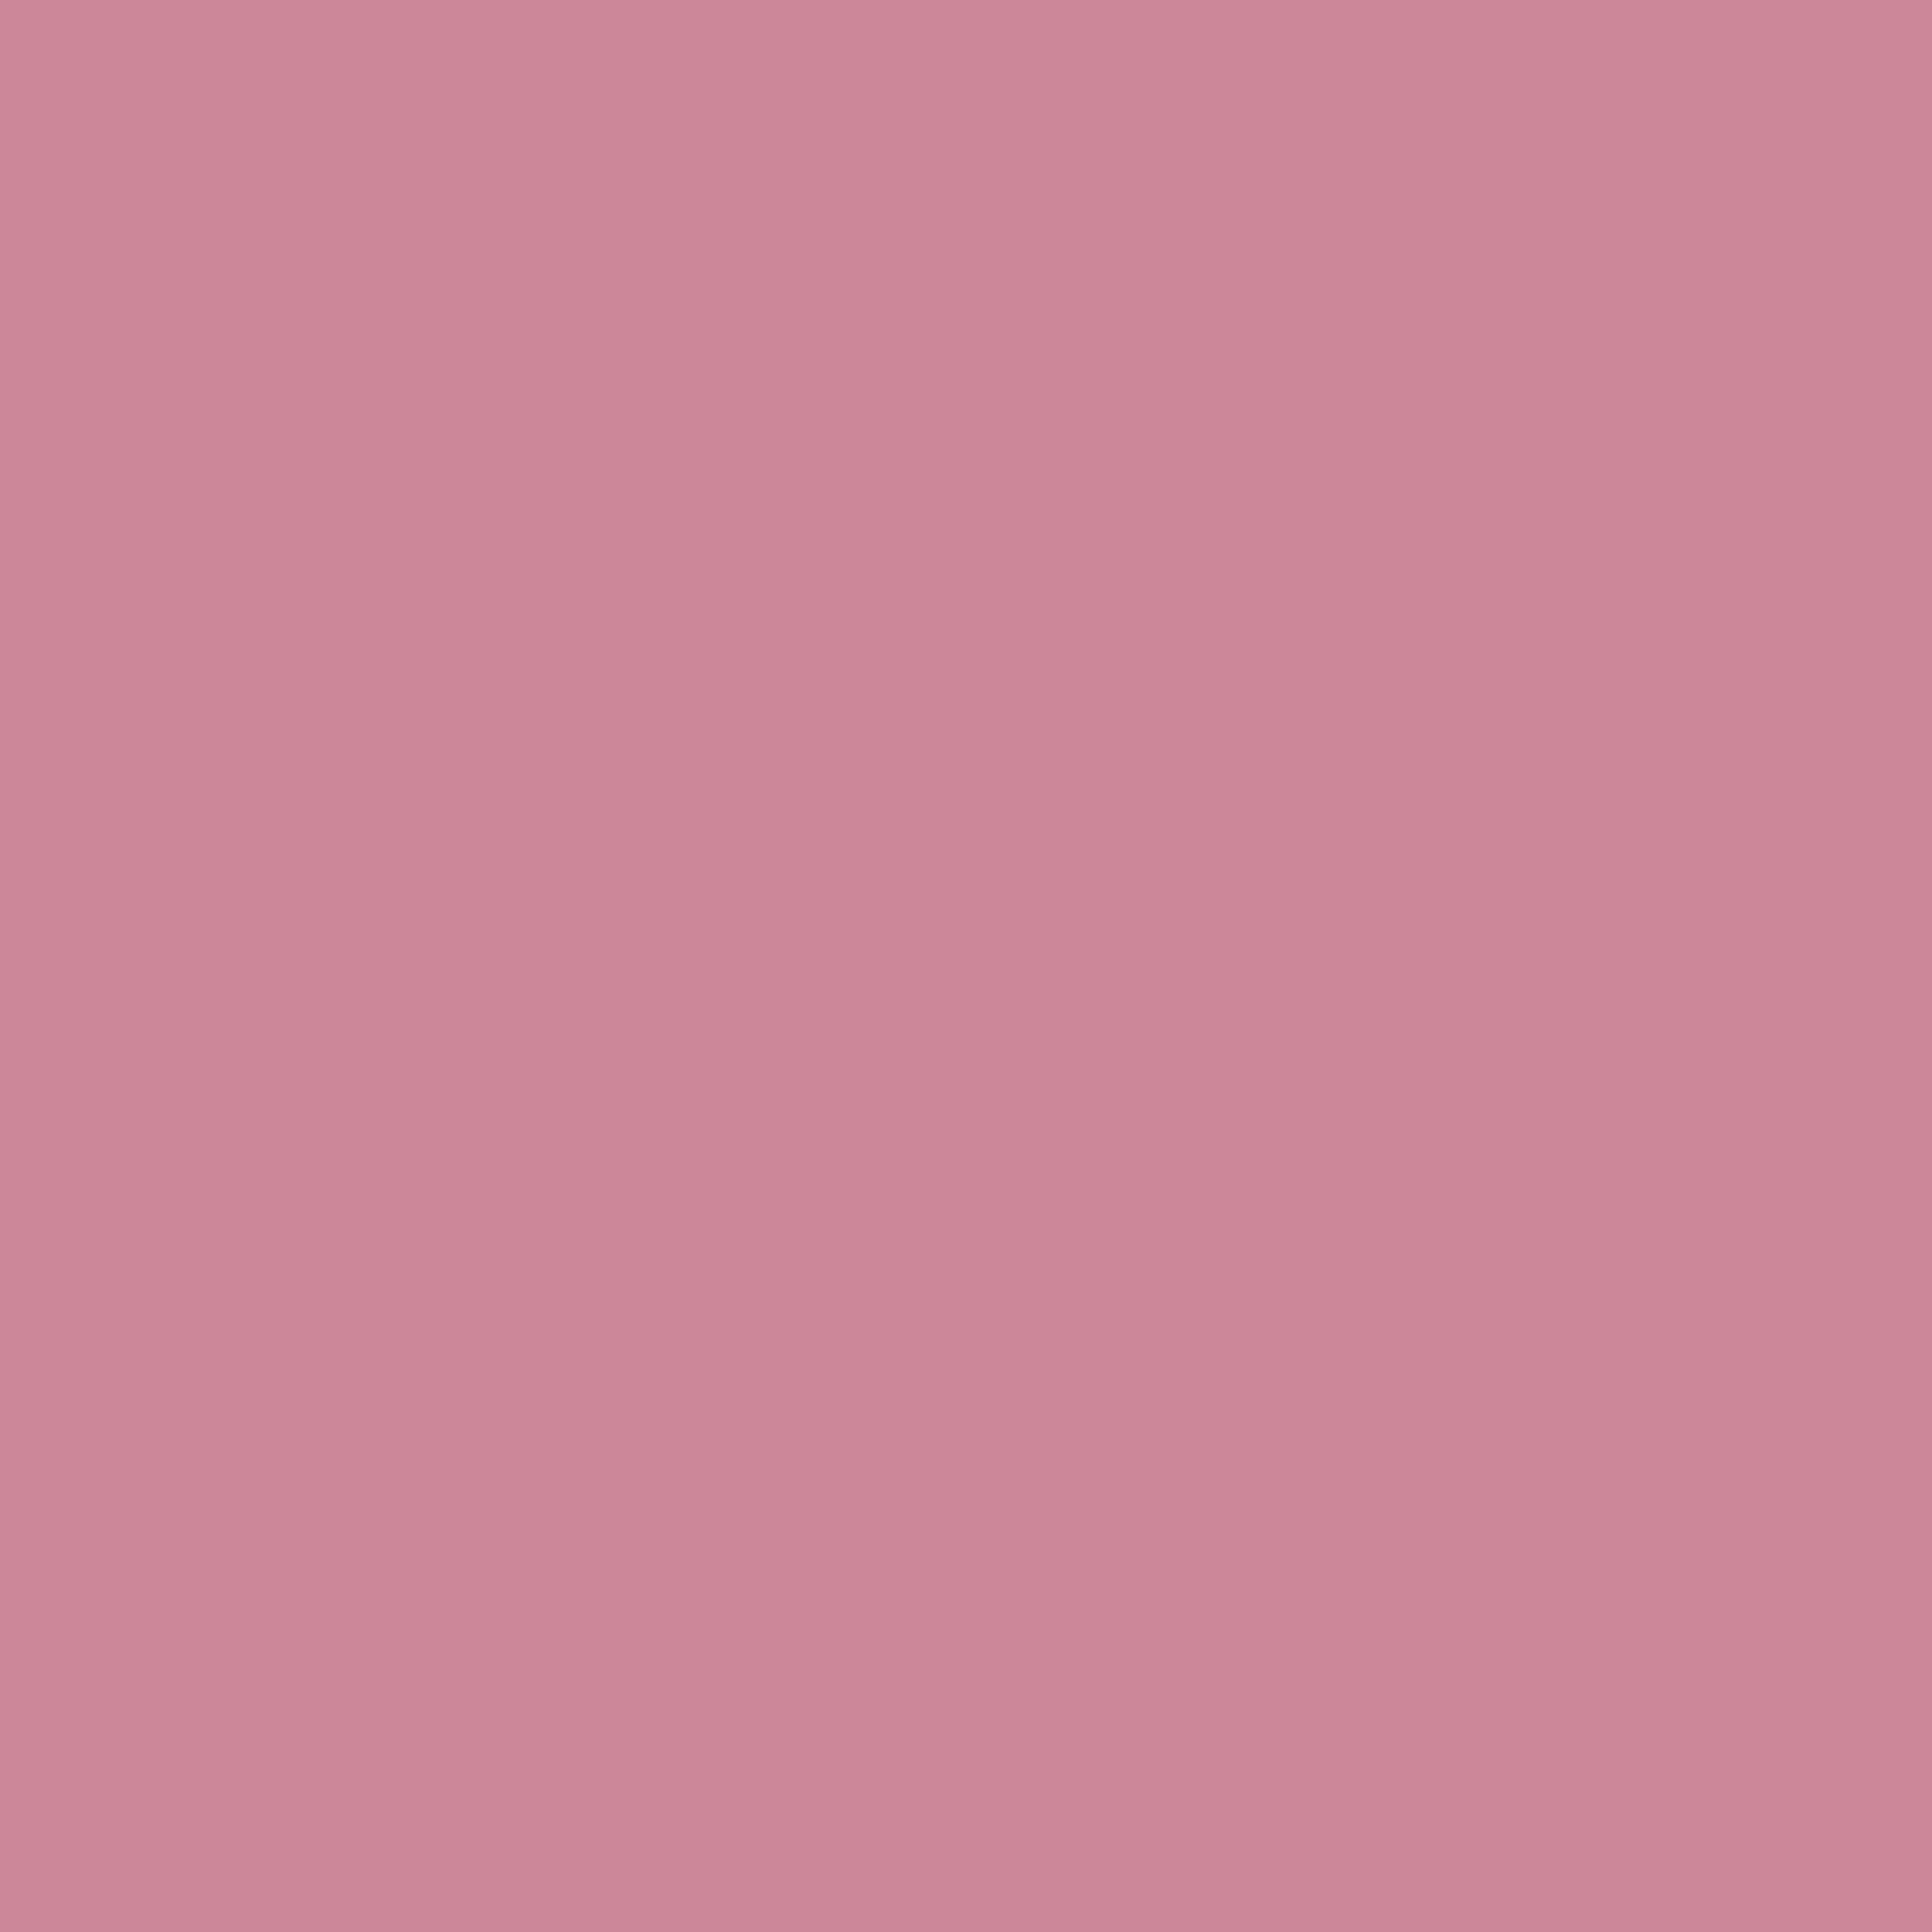 3600x3600 Puce Solid Color Background